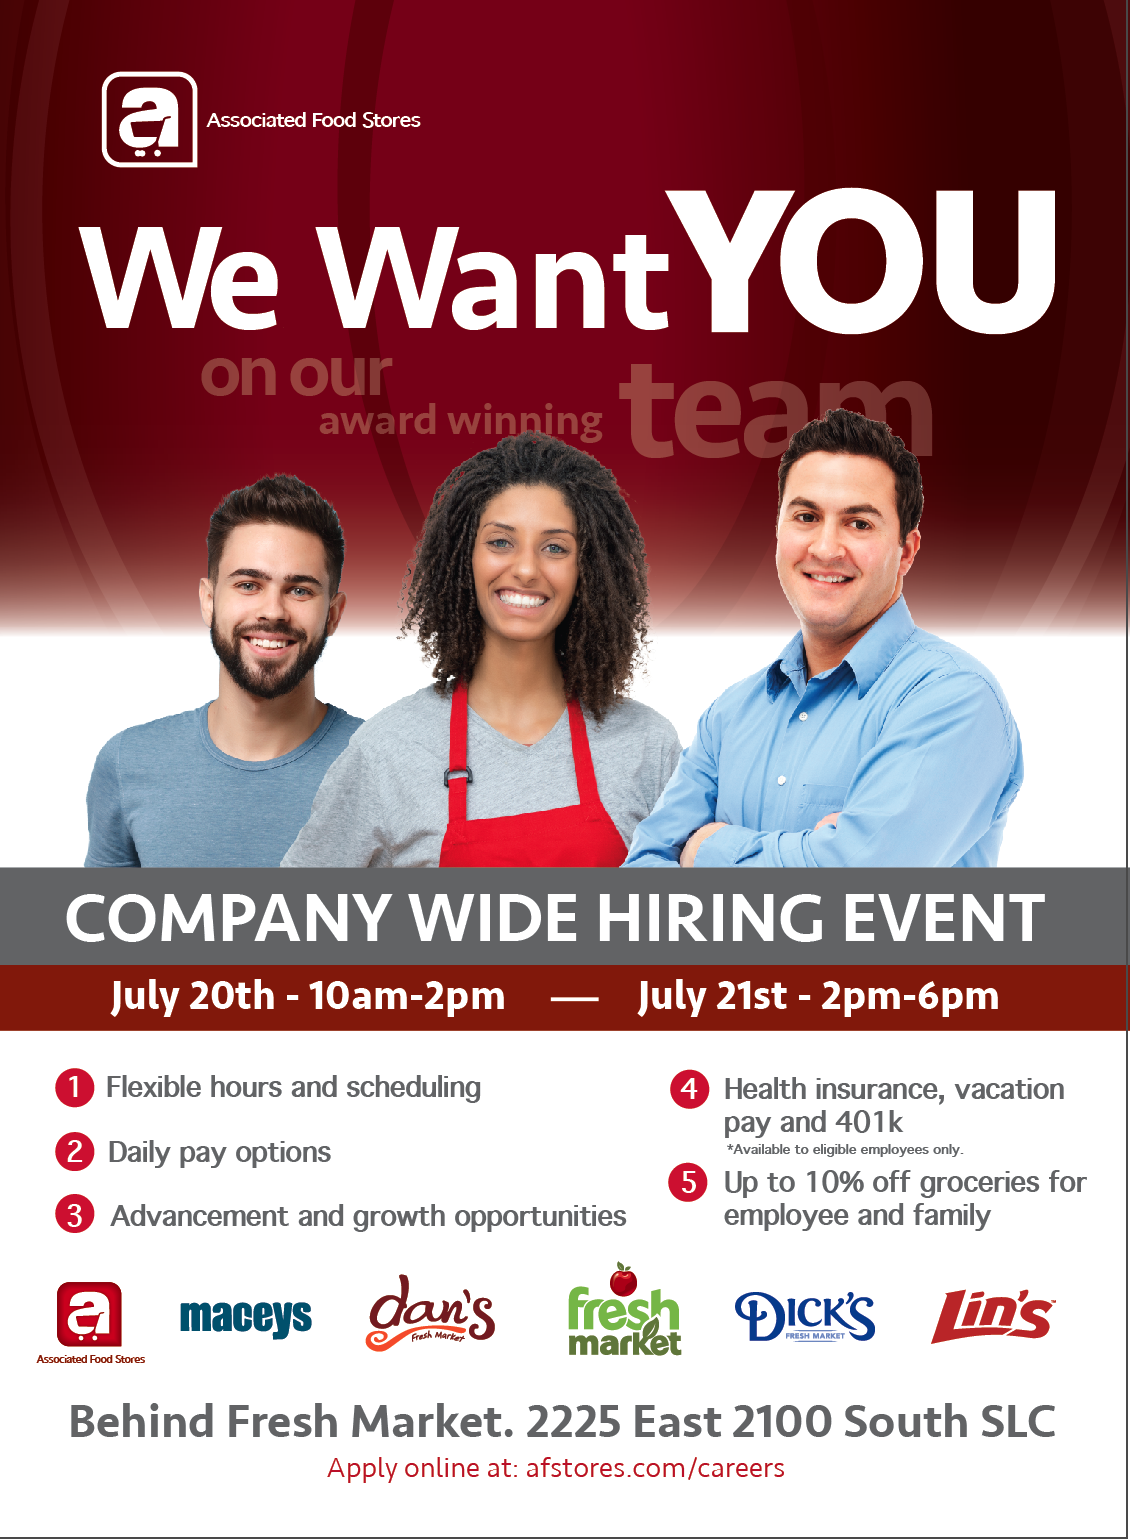 AFS hiring event poster